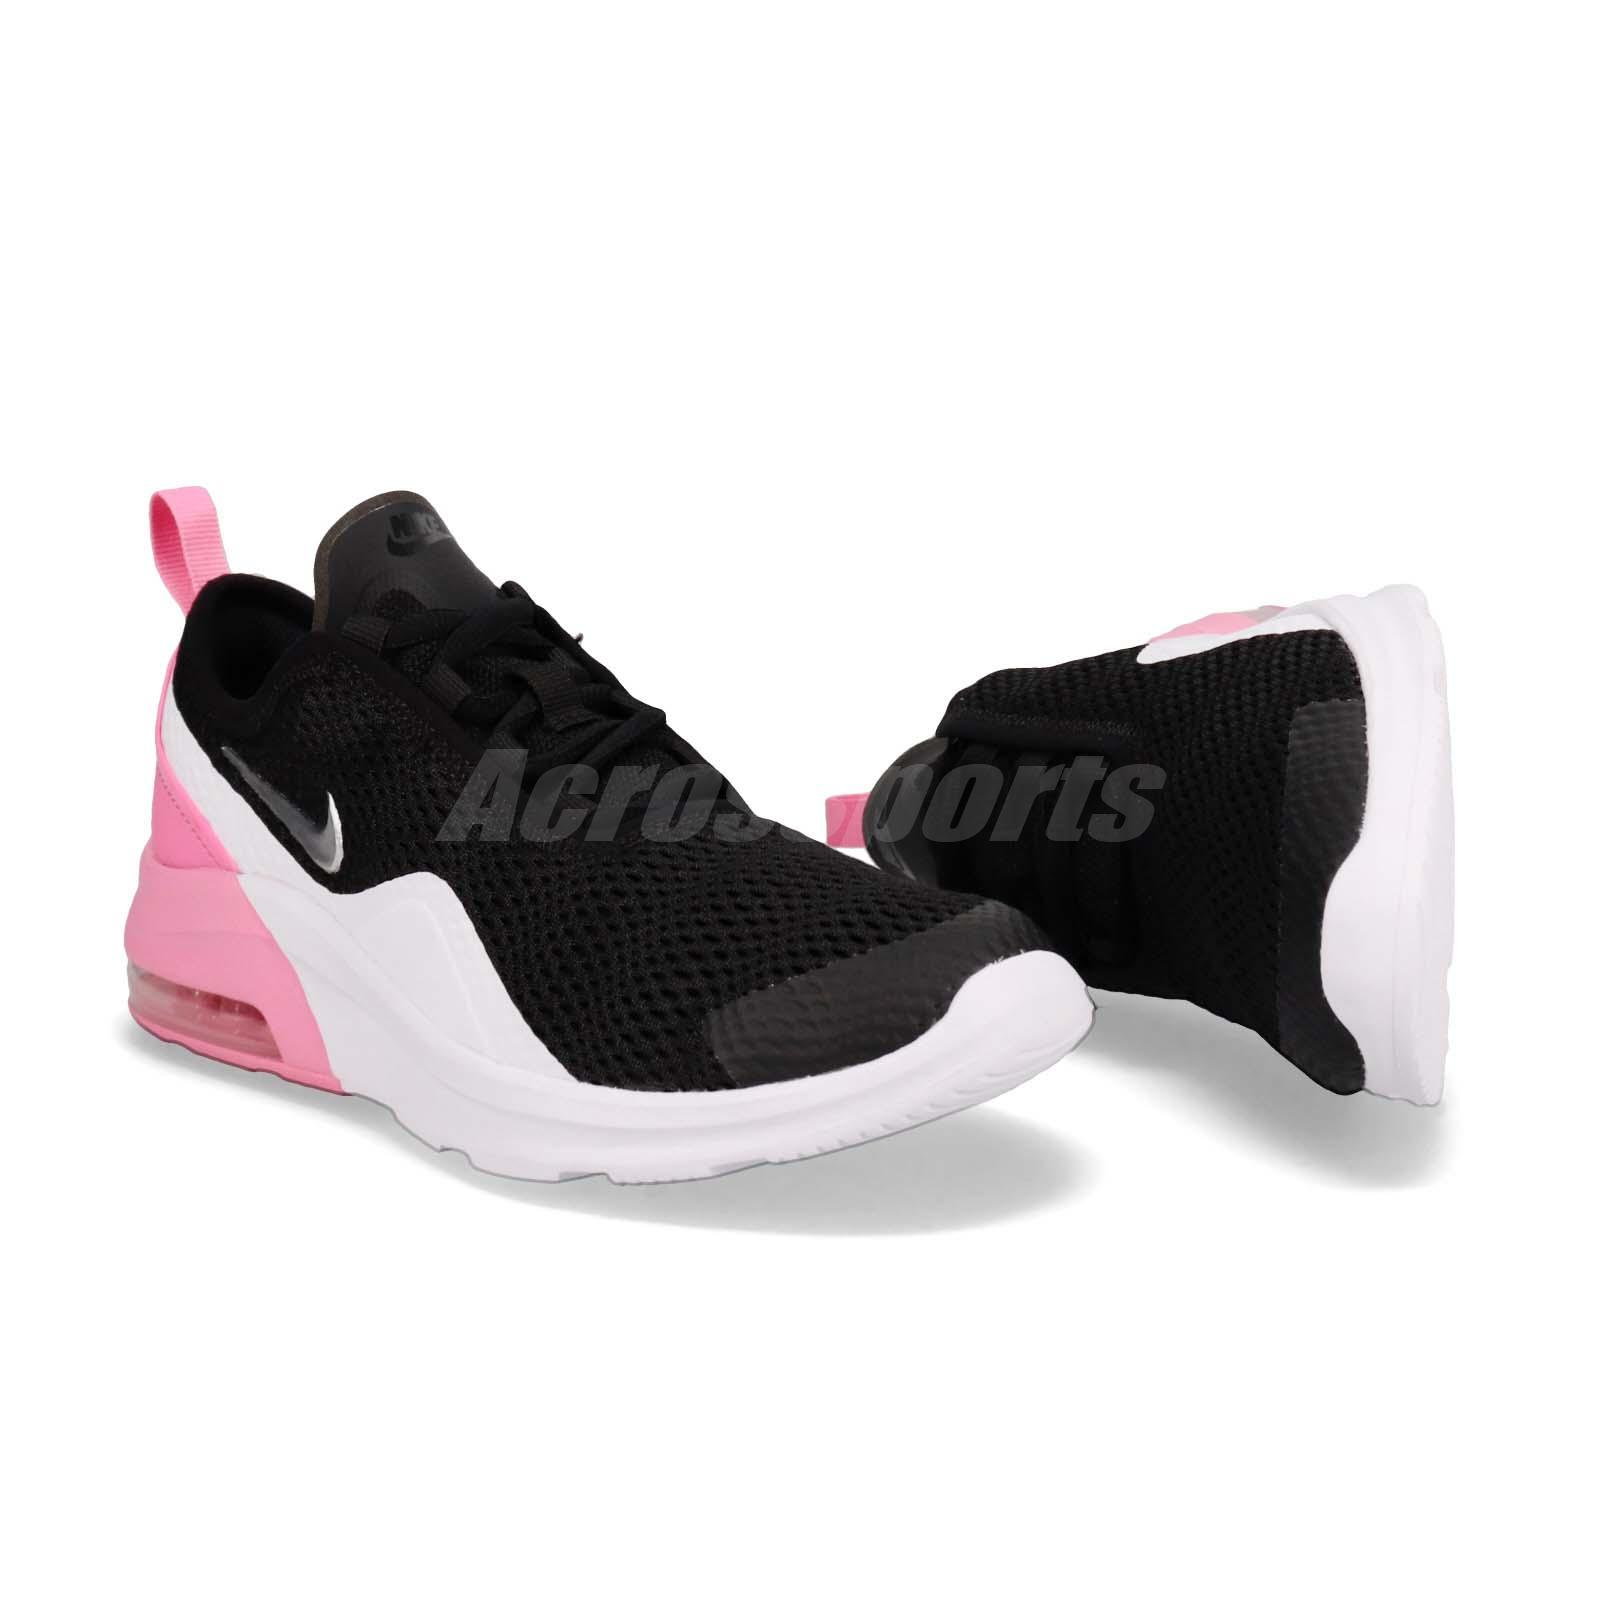 Details about Nike Air Max Motion 2 GS II Black Silver Pink White Kid Women Shoes AQ2745 001